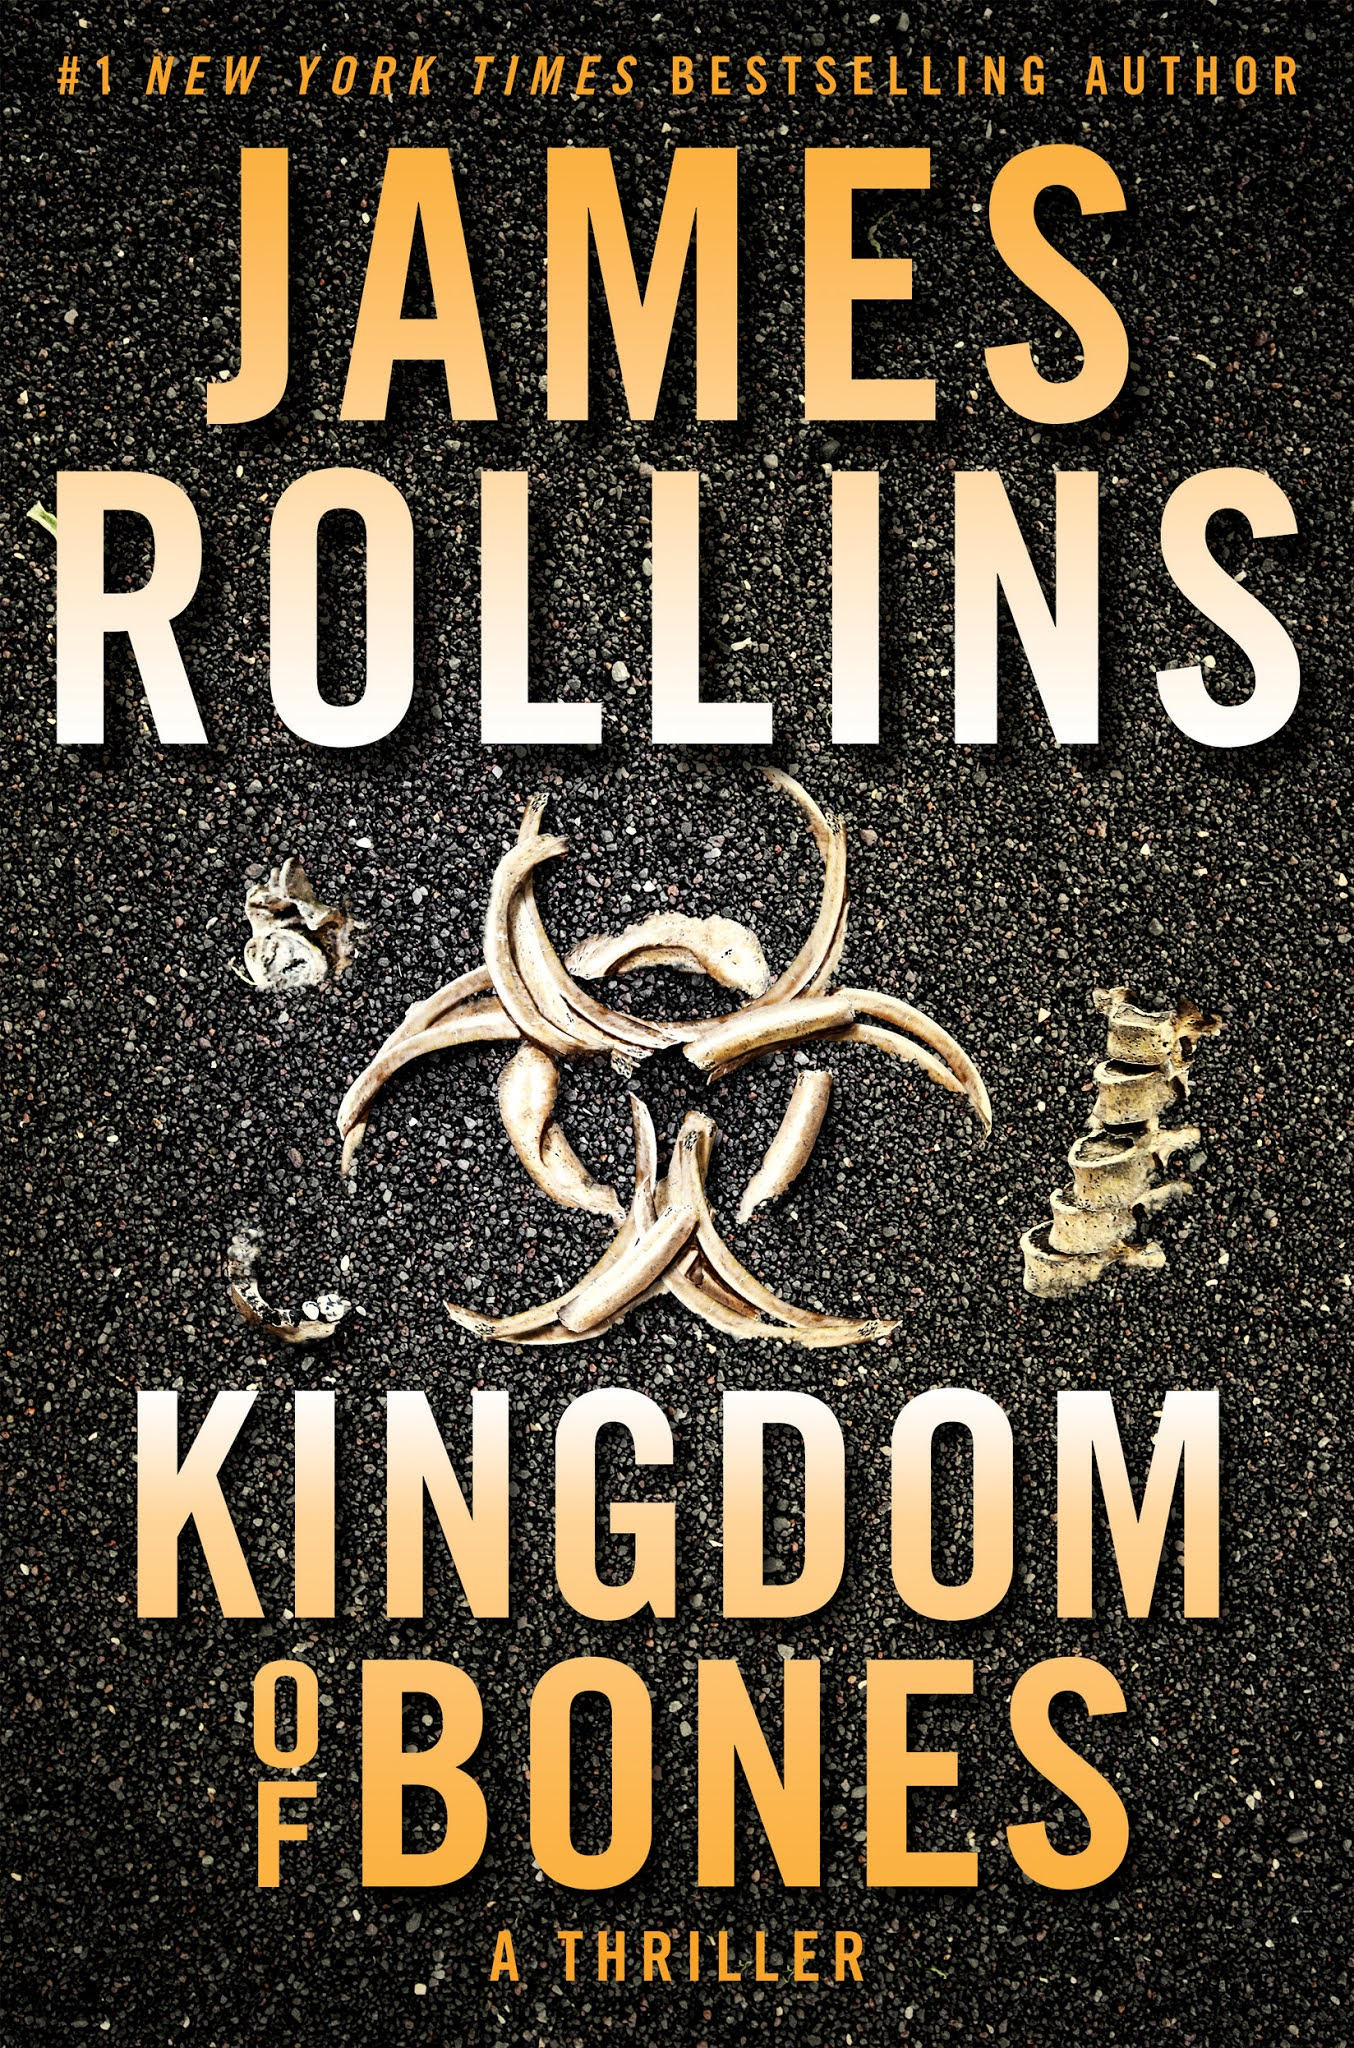 Kingdom of Bones by James Rollins